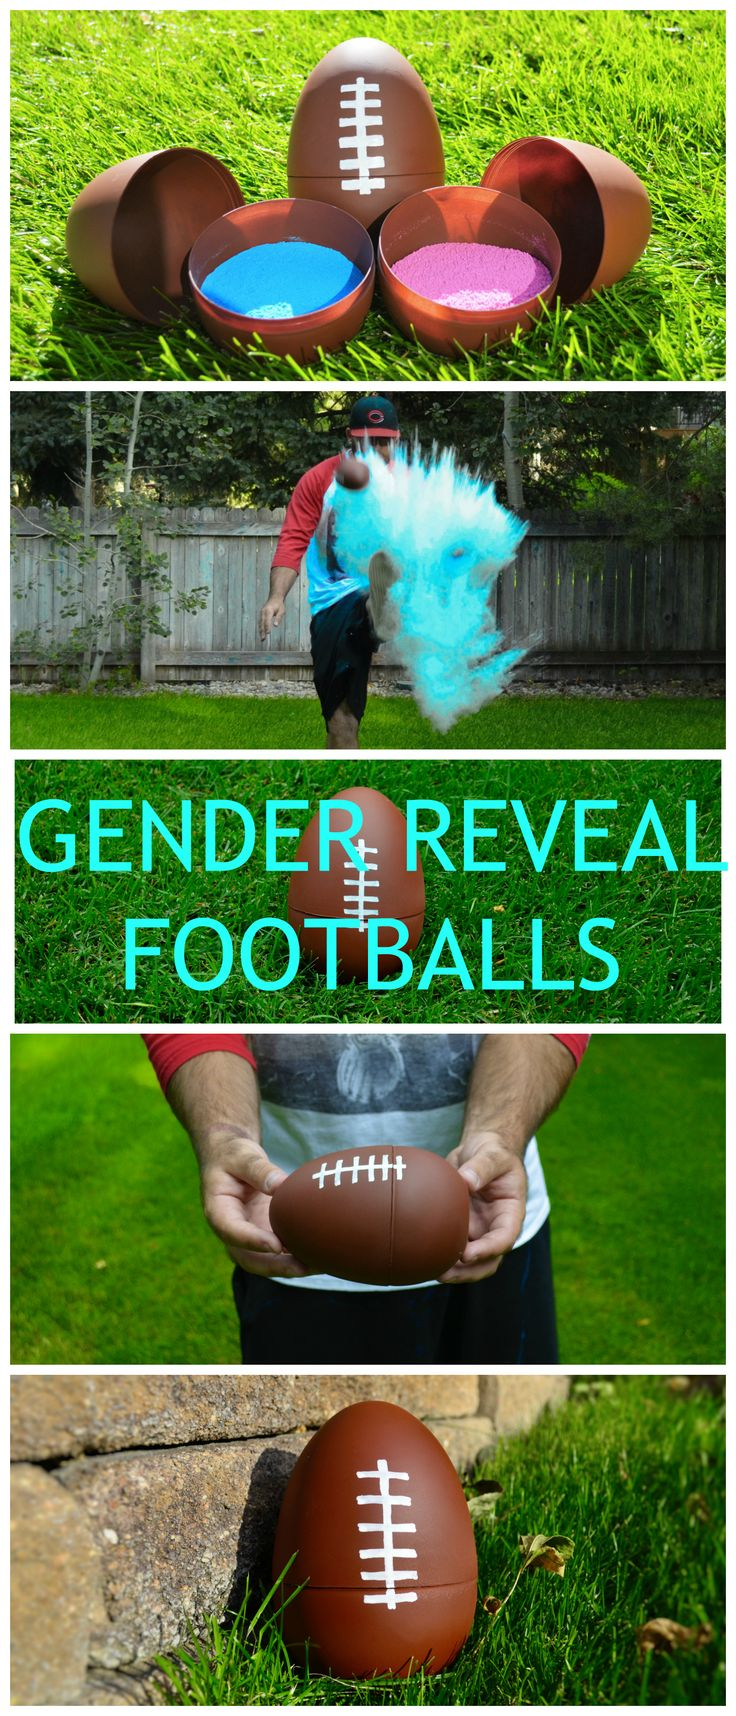 FOOTBALL GENDER REVEAL PARTY! Cute Gender Reveal Idea                                                                                                                                                                                 More